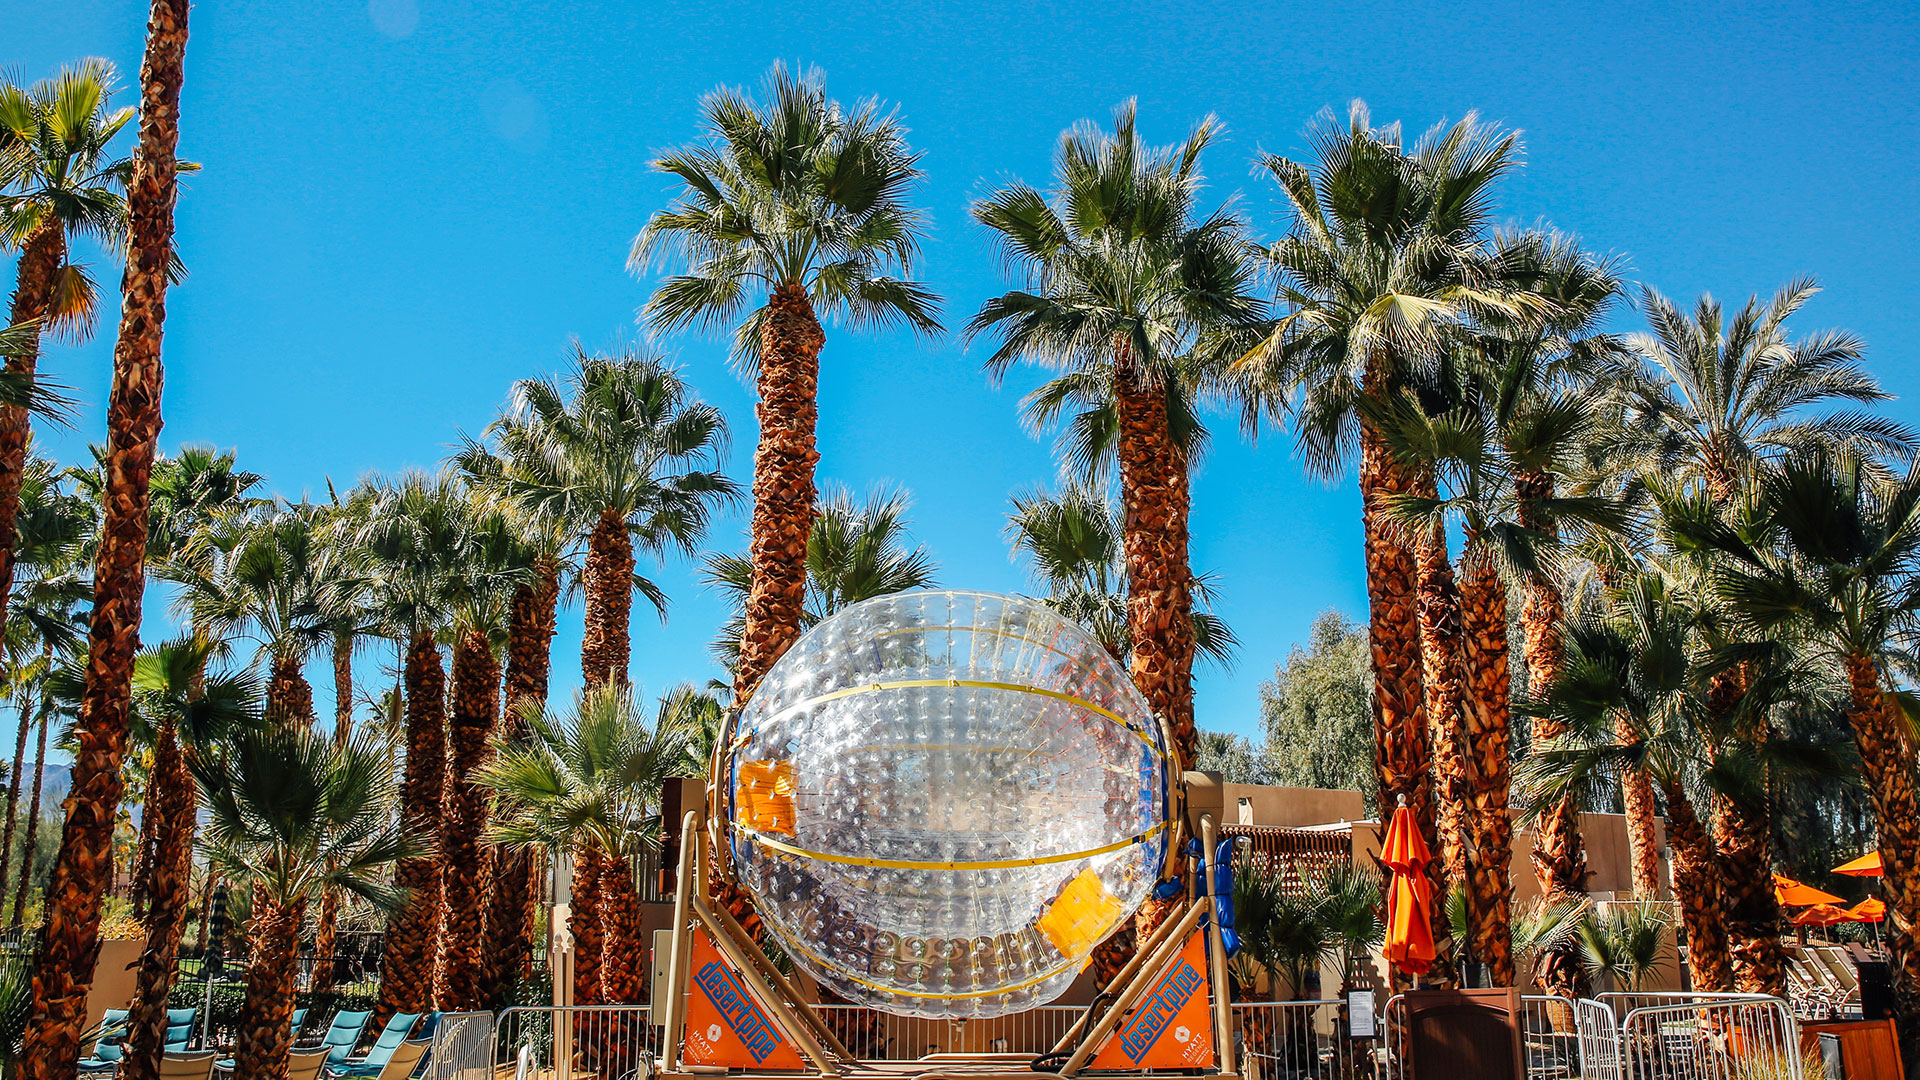 Have a ball inside DesertPipe at Hyatt Regency Indian Wells